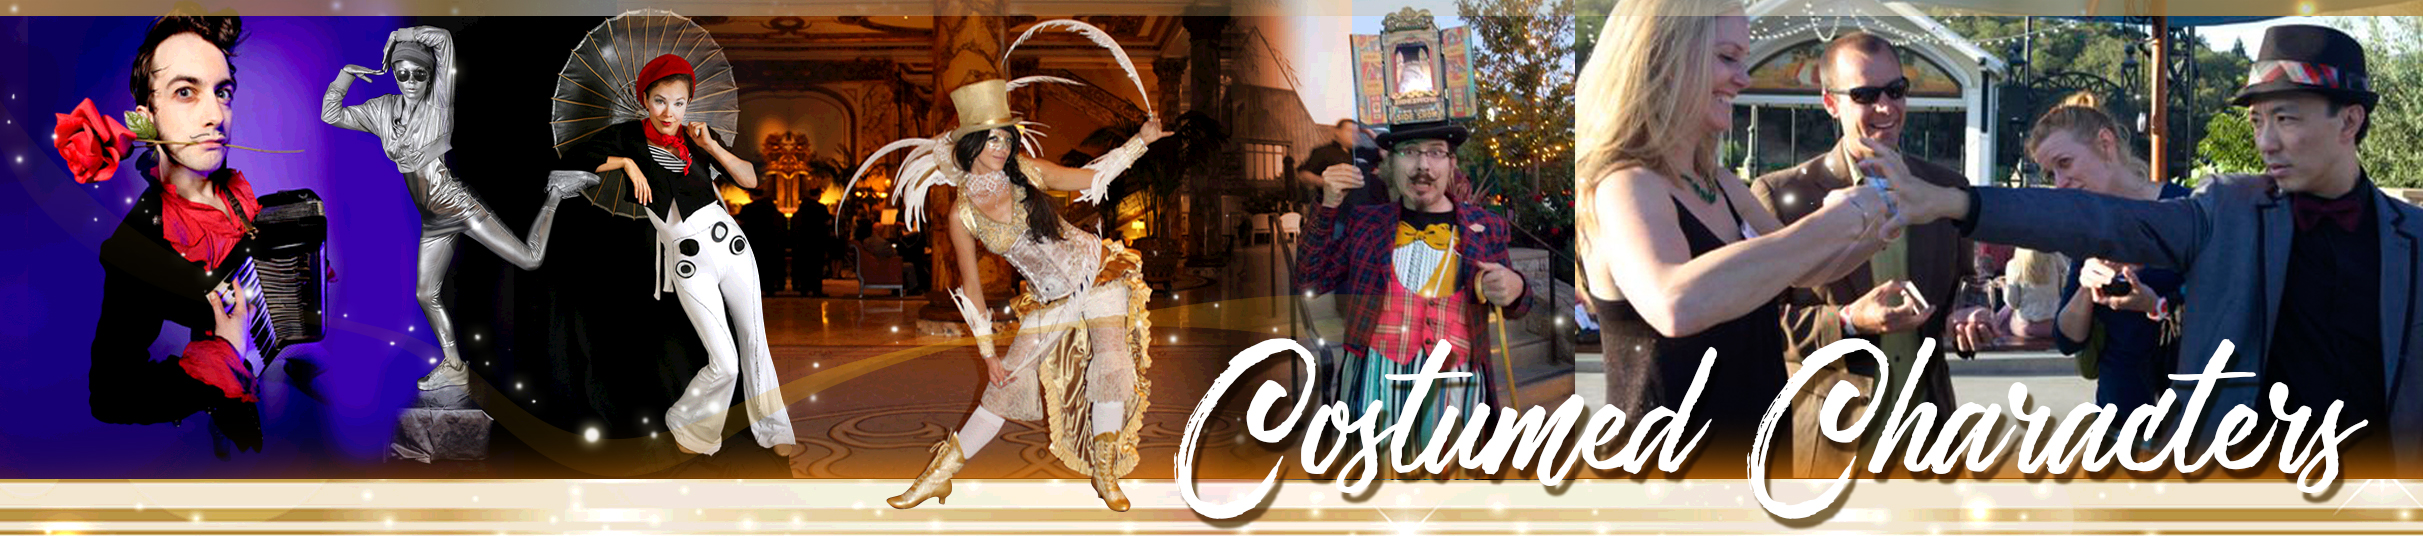 Costumed Characters & Walkabout talent by Catalyst Arts in California